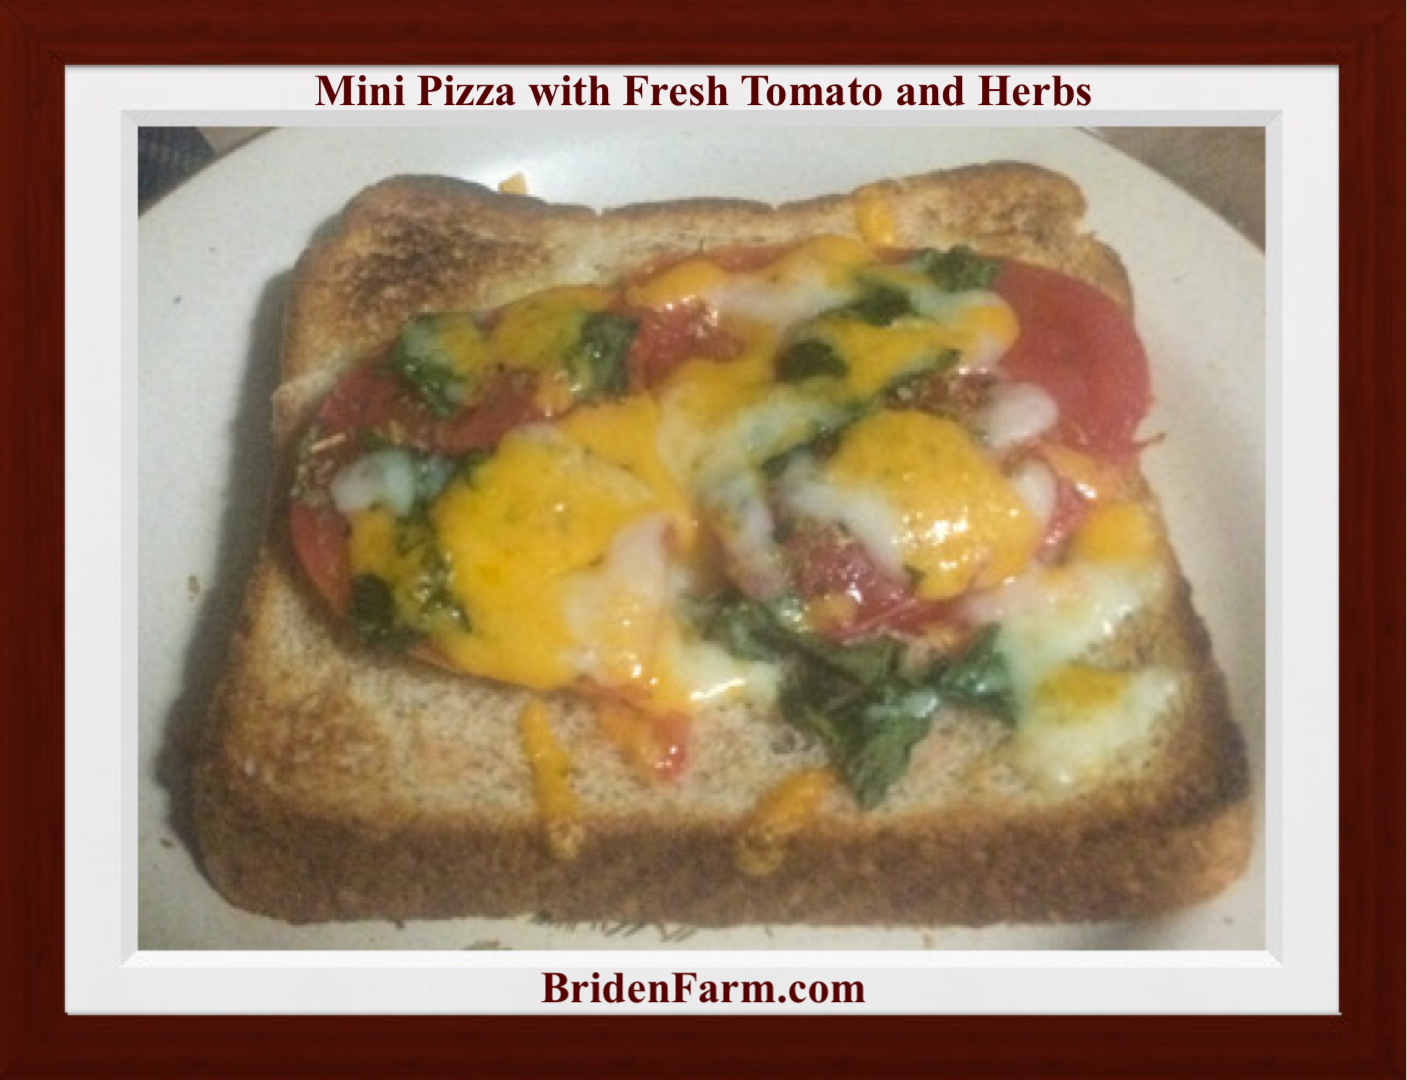 Mini Pizza with Fresh Tomato and Herbs